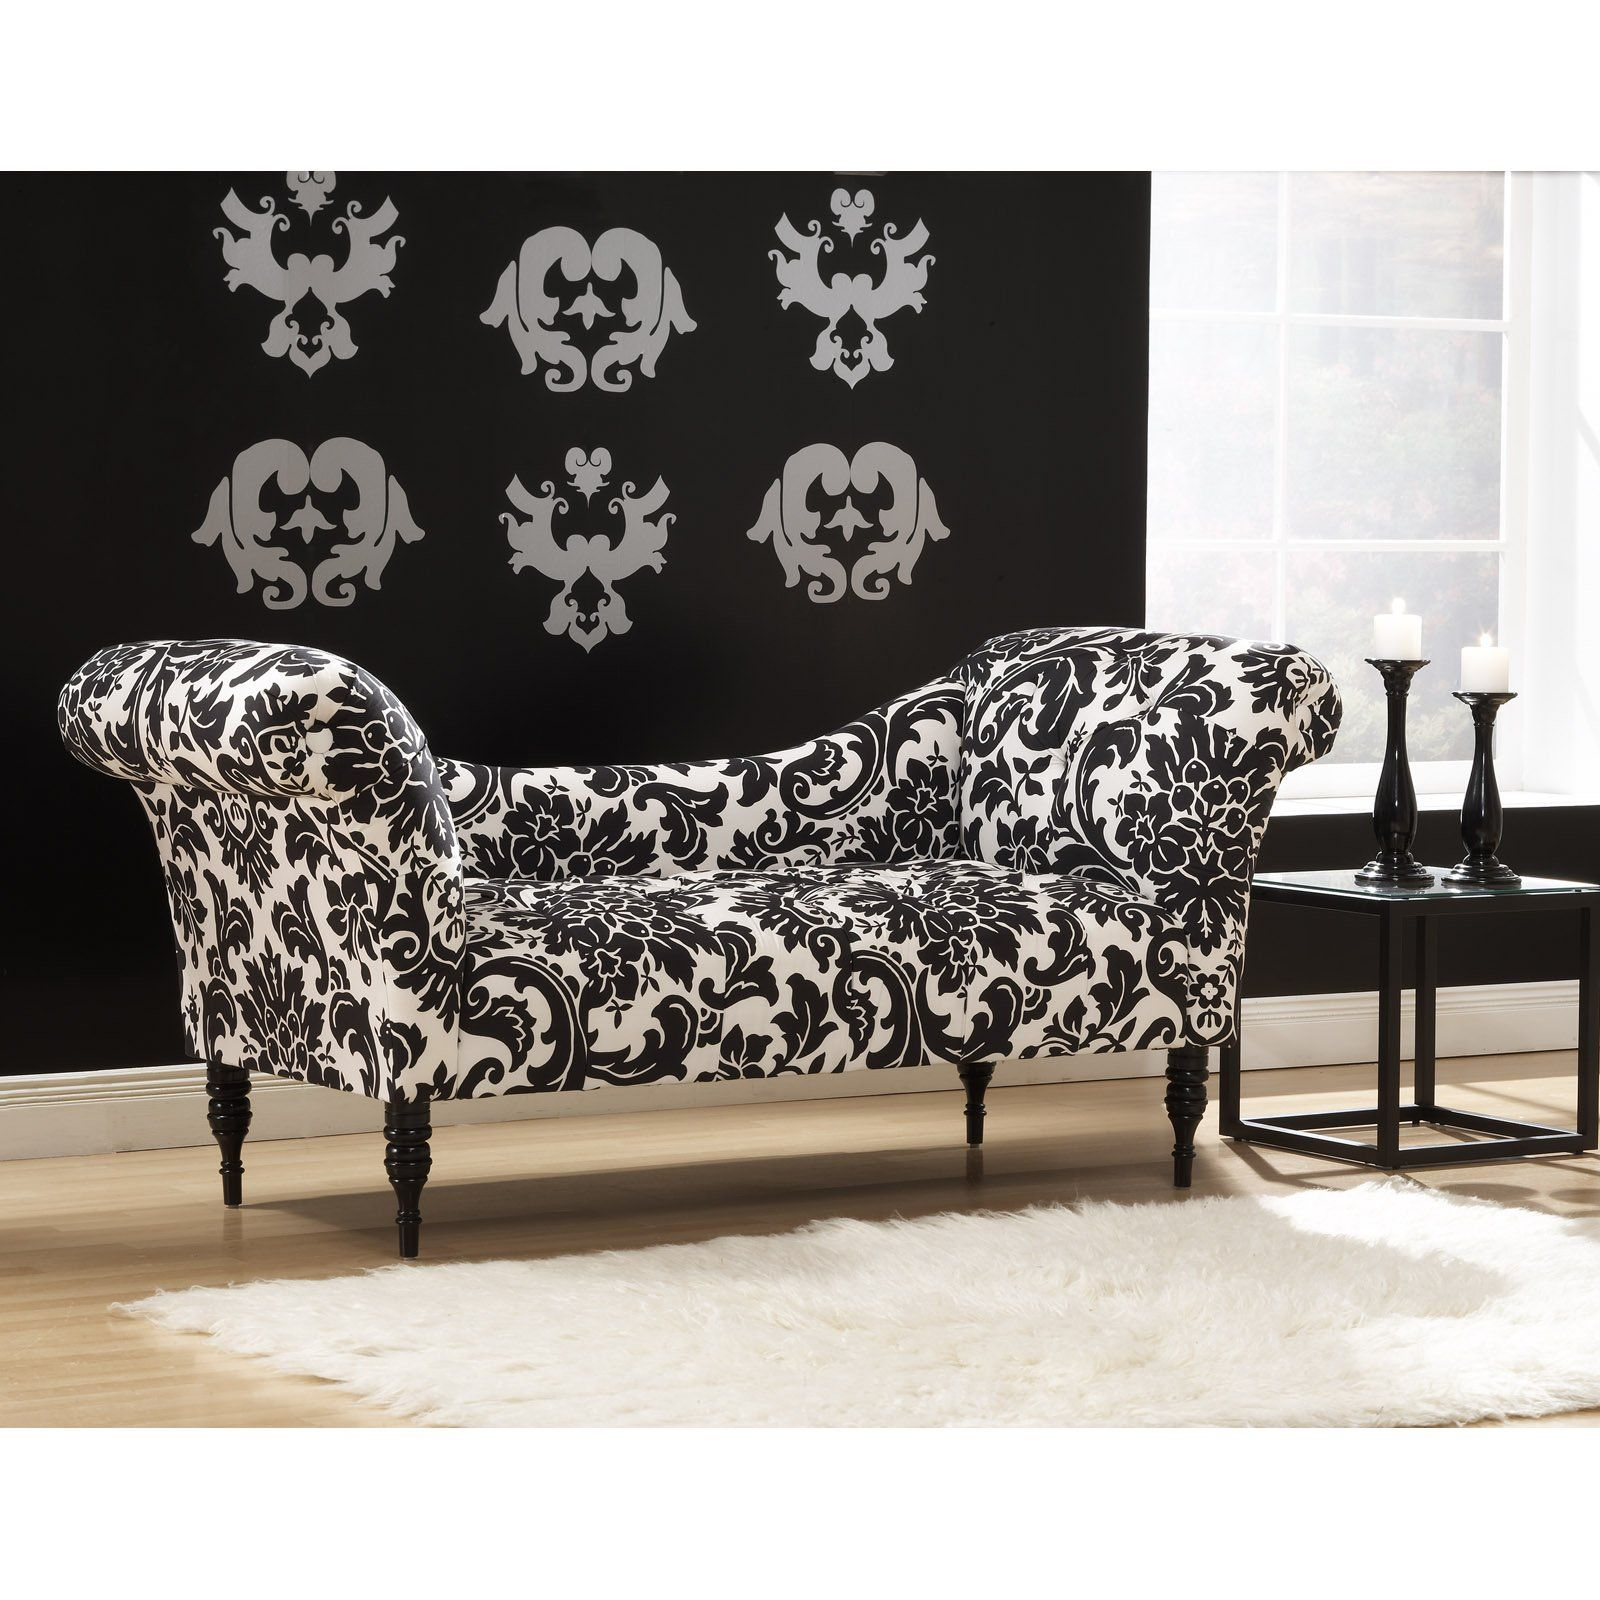 Want something like this in the red room with the white